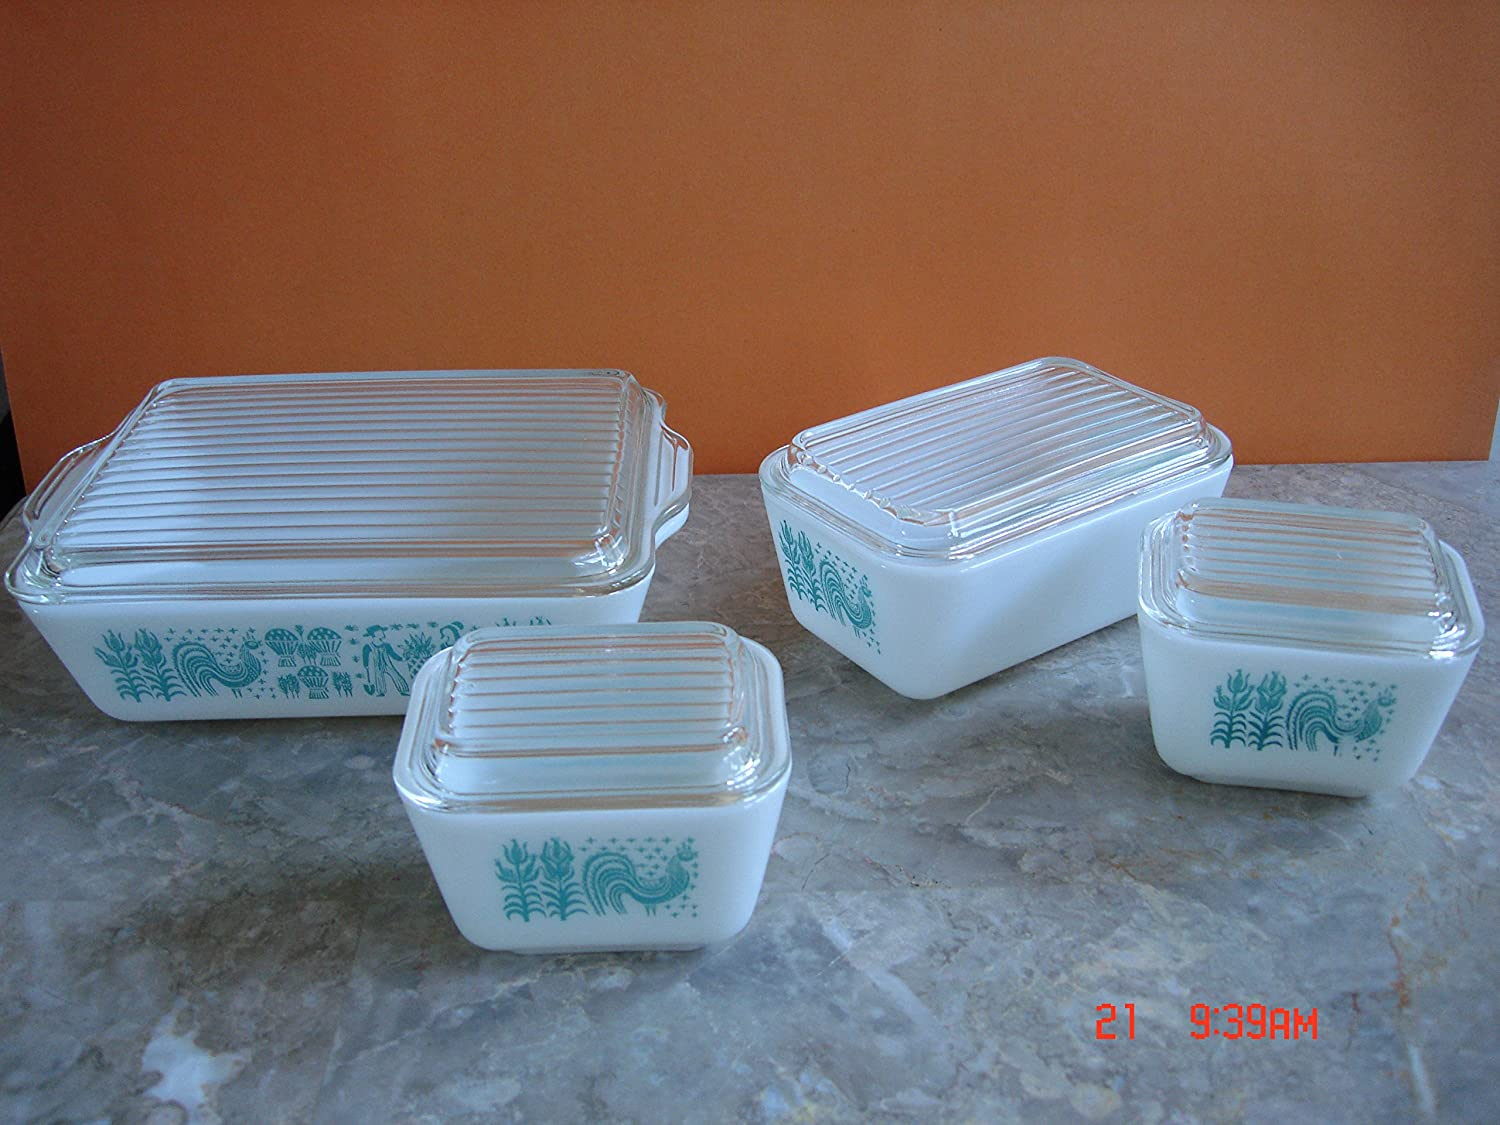 Vintage Pyrex Amish Butterprint Covered 8pc Refrigerator / Oven Bakeware Set